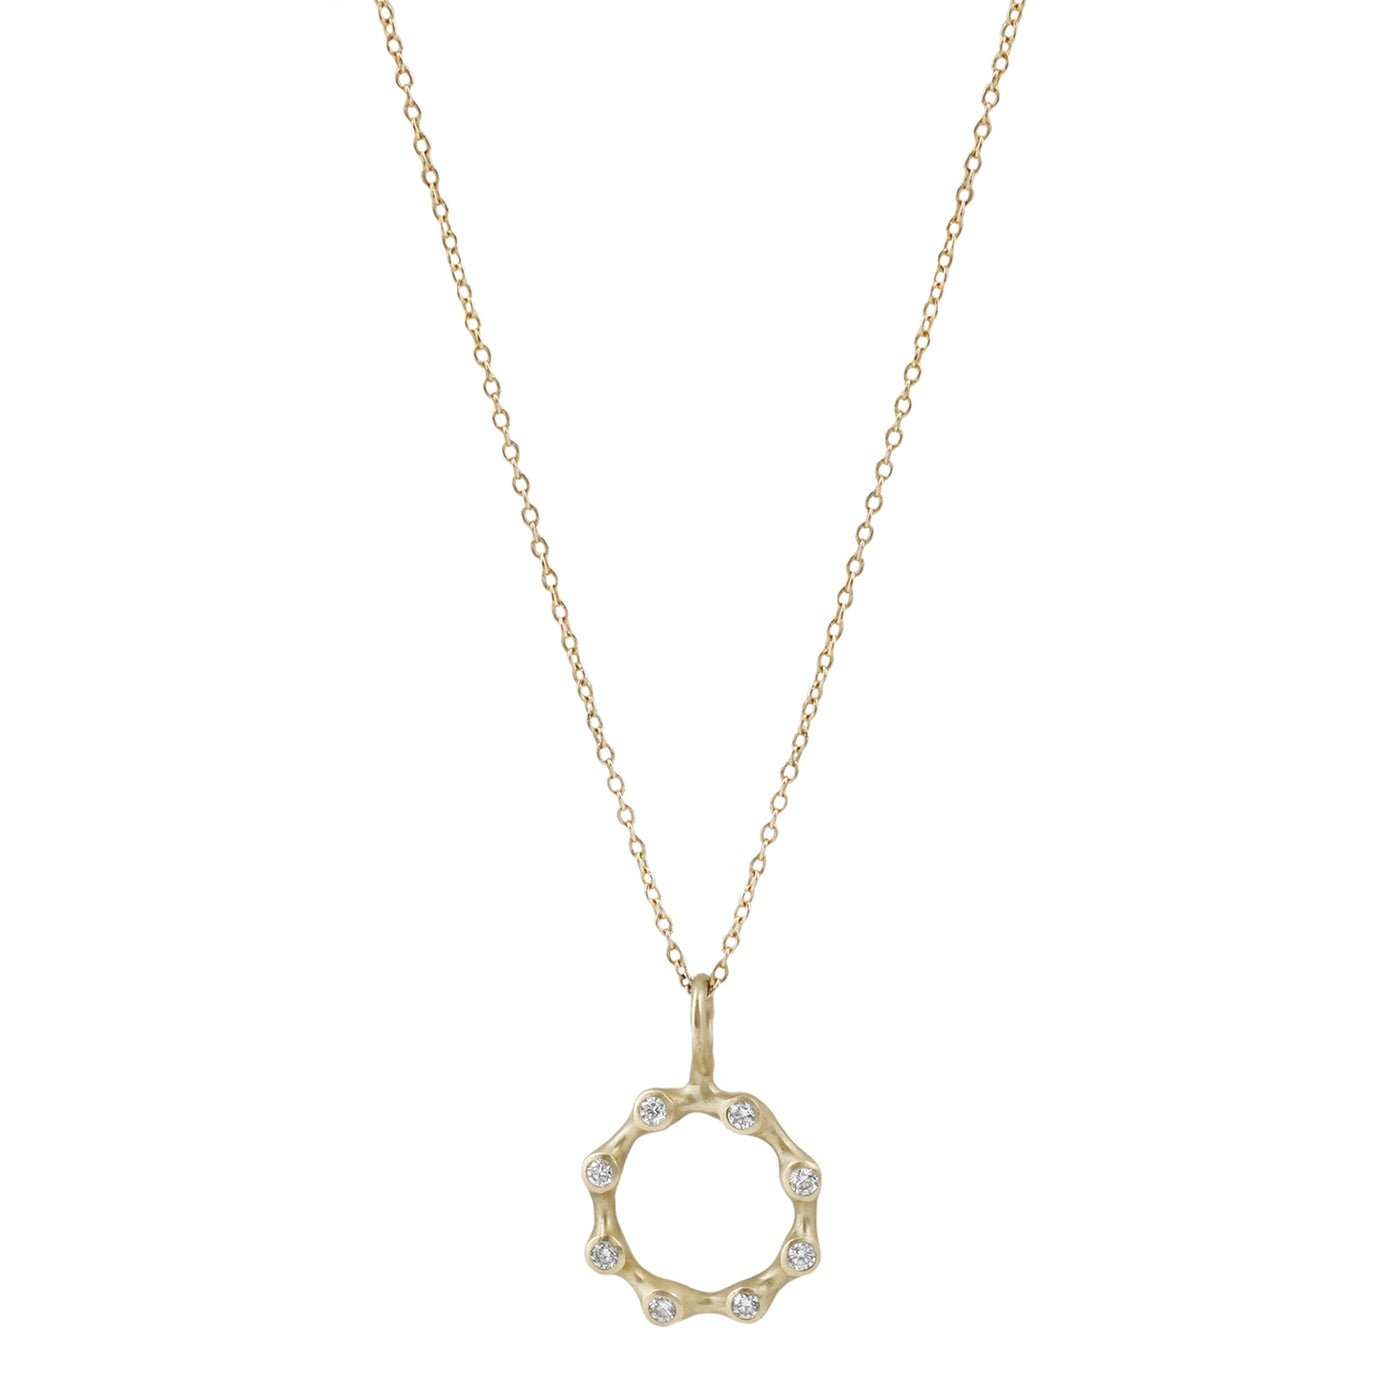 Johnny Ninos Circle Diamond Reef Pendant